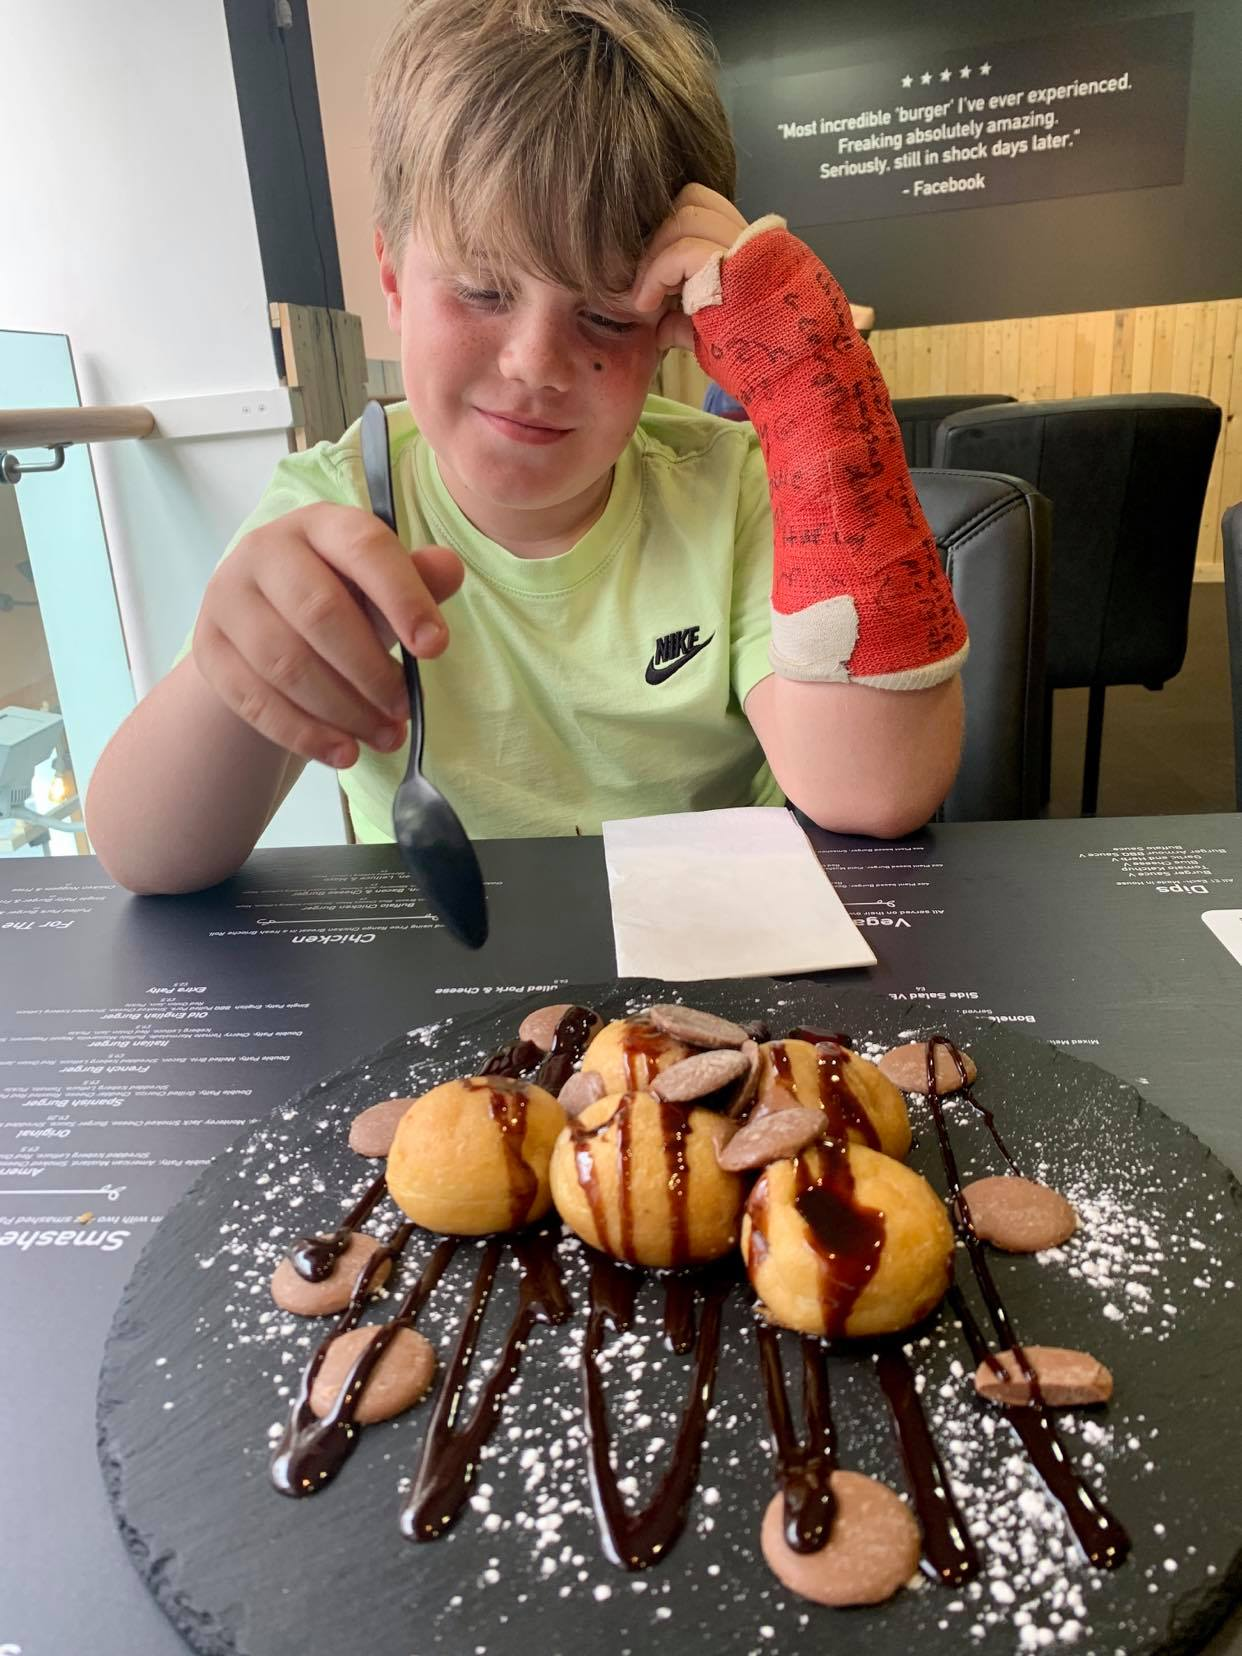 family friendly places to eat out in sudbury